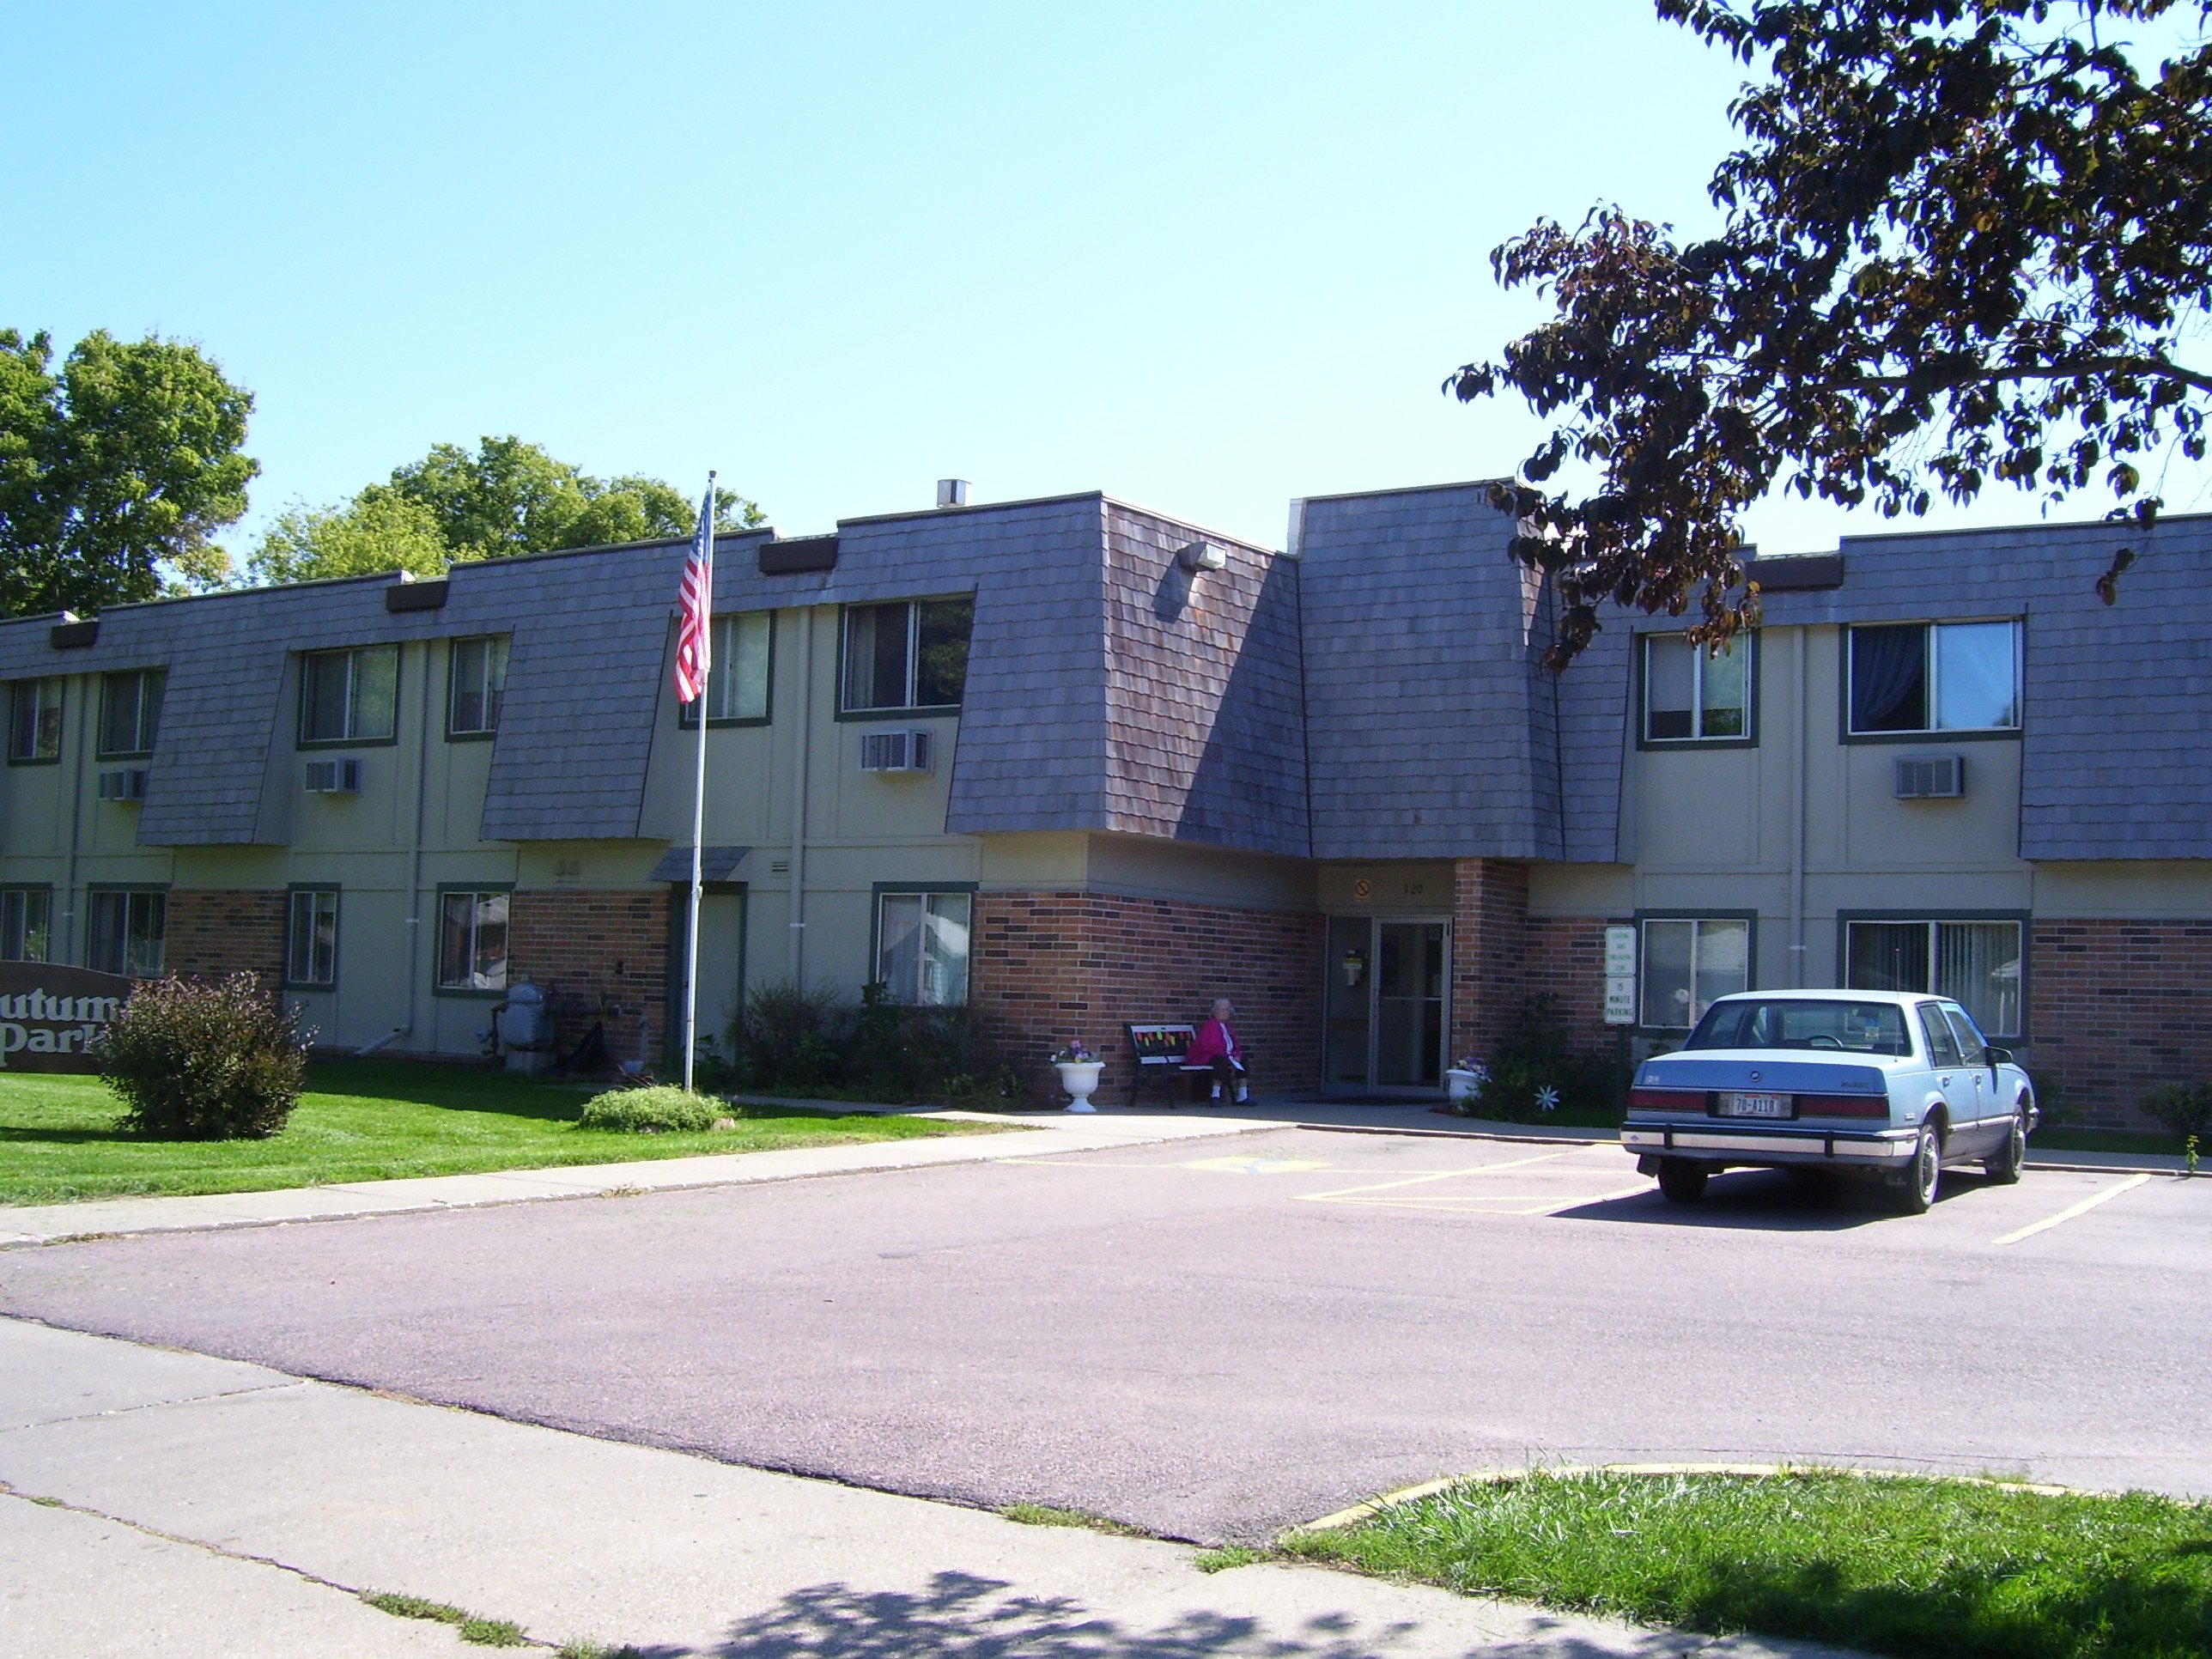 1 Bedroom Apartments Sioux City Ia